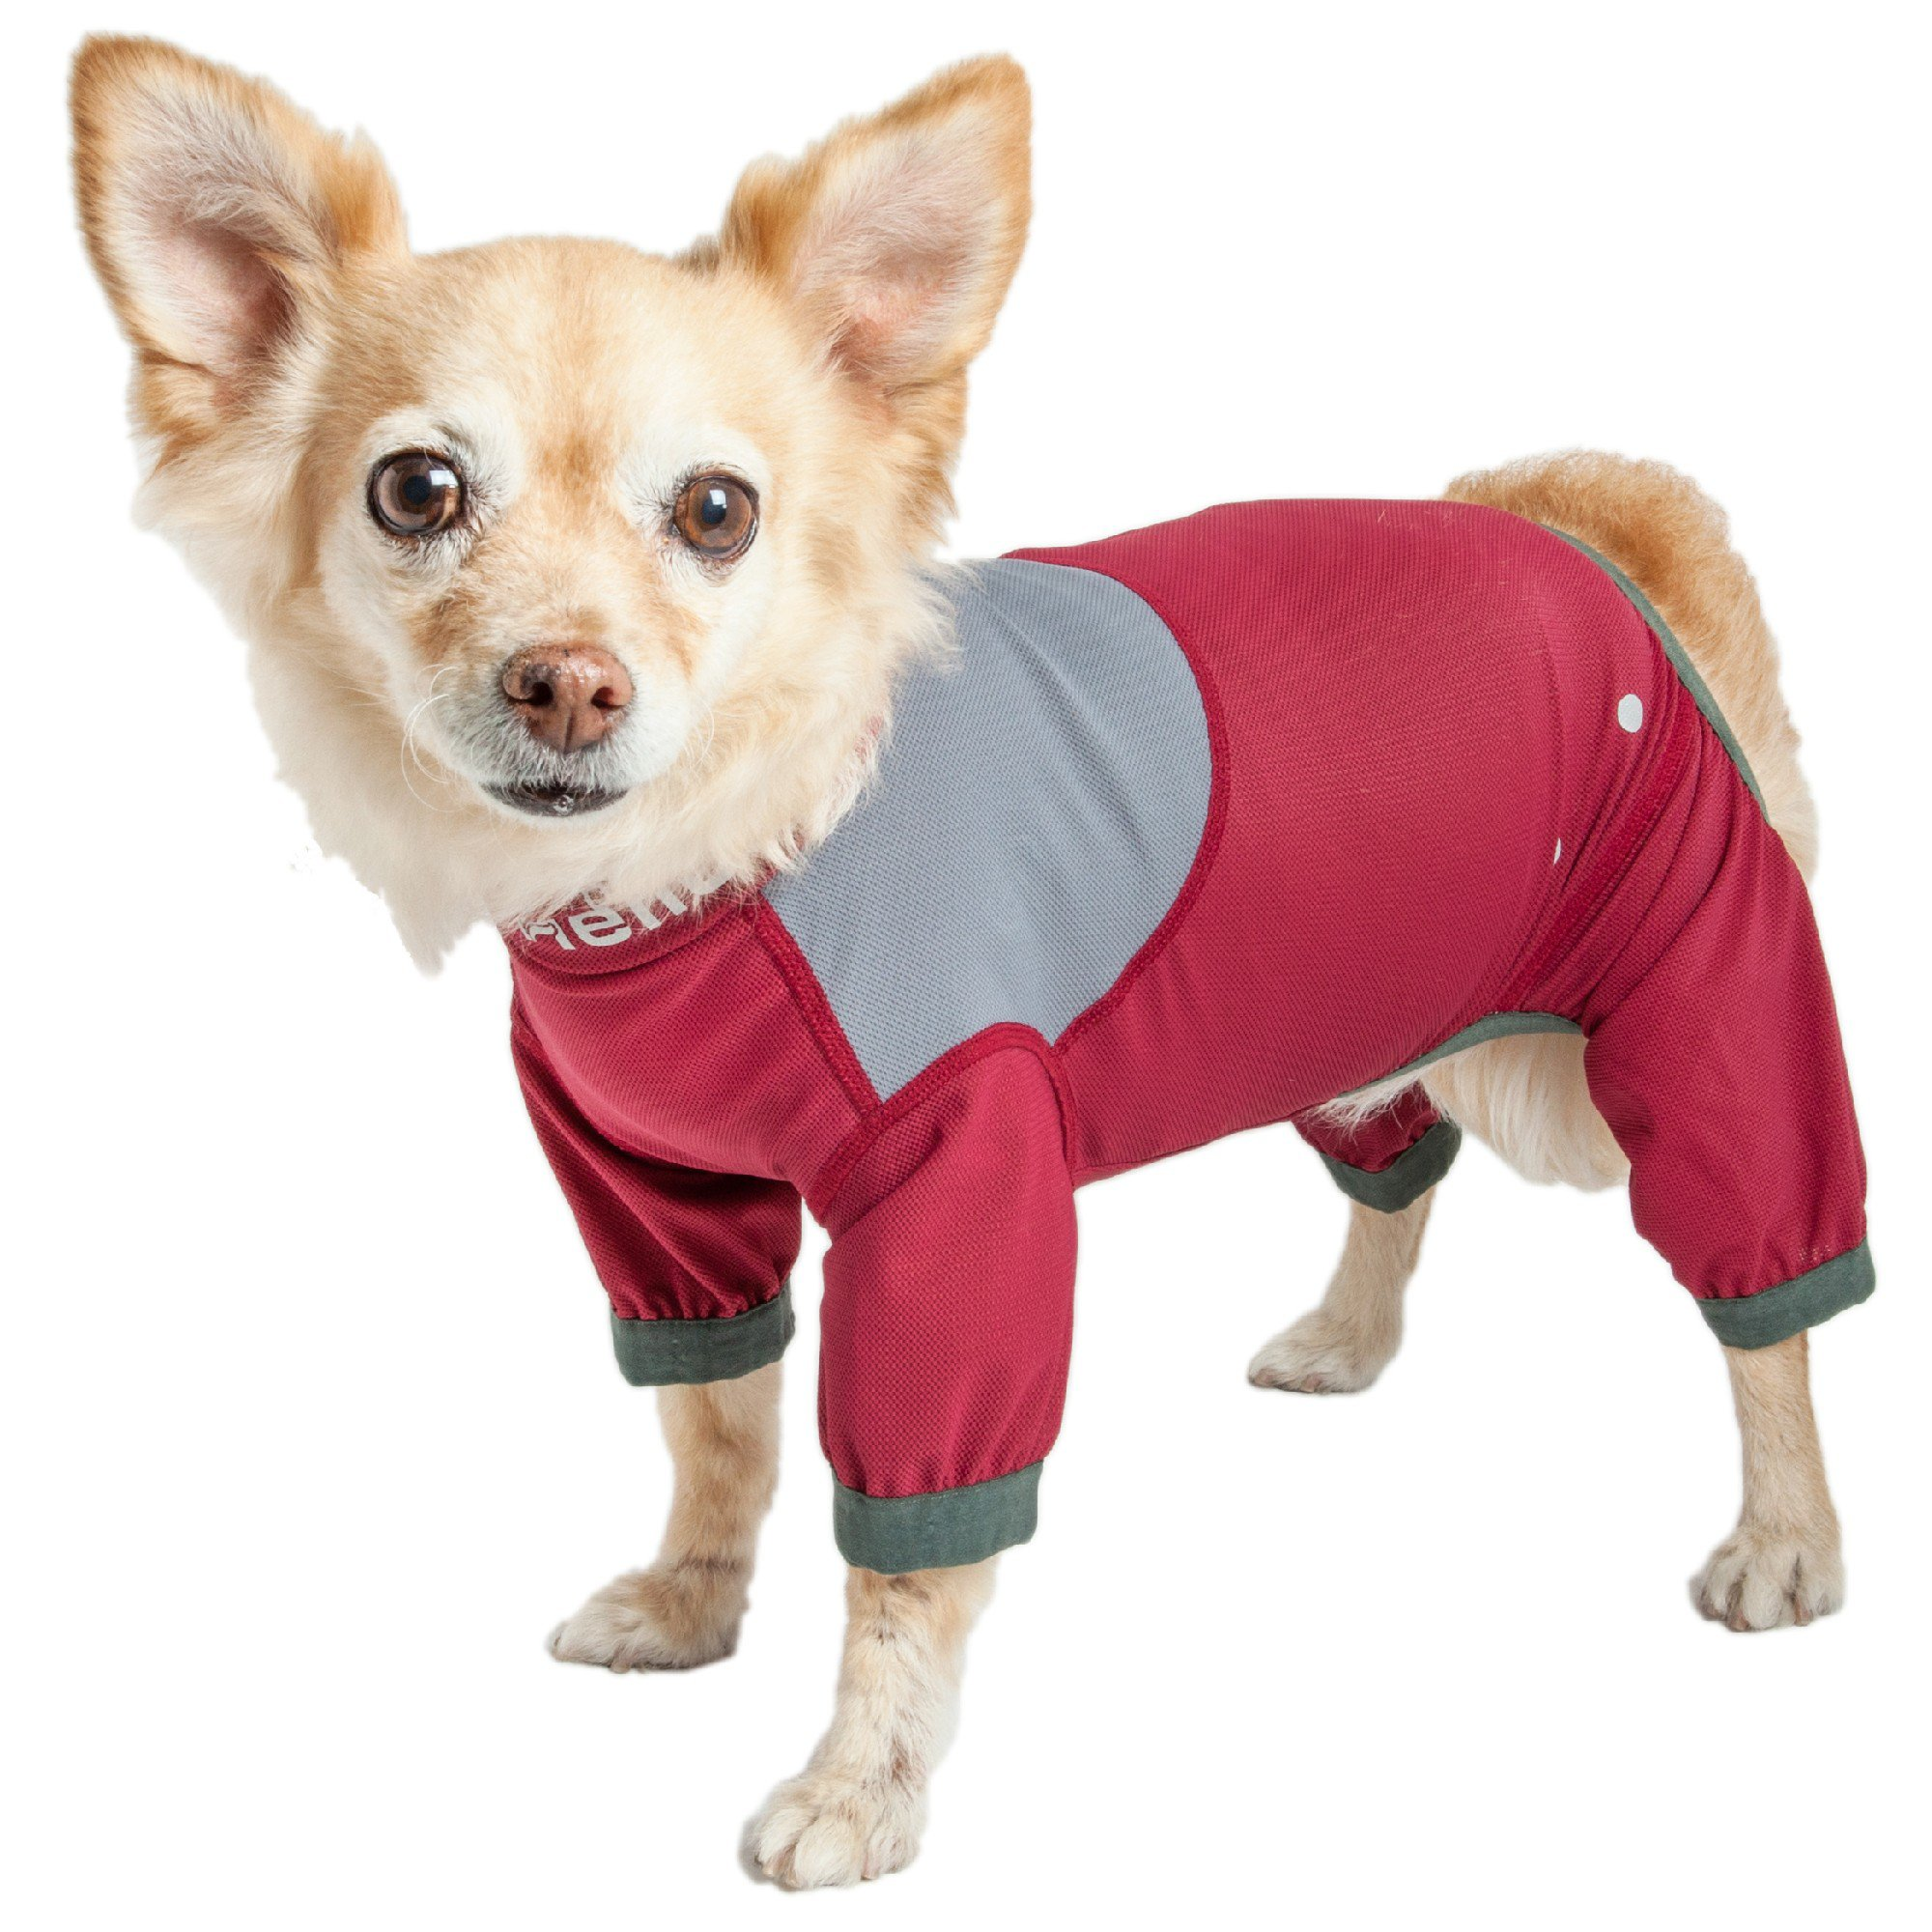 Dog Helios Tail Runner Lightweight Red Dog Track Suit, Large